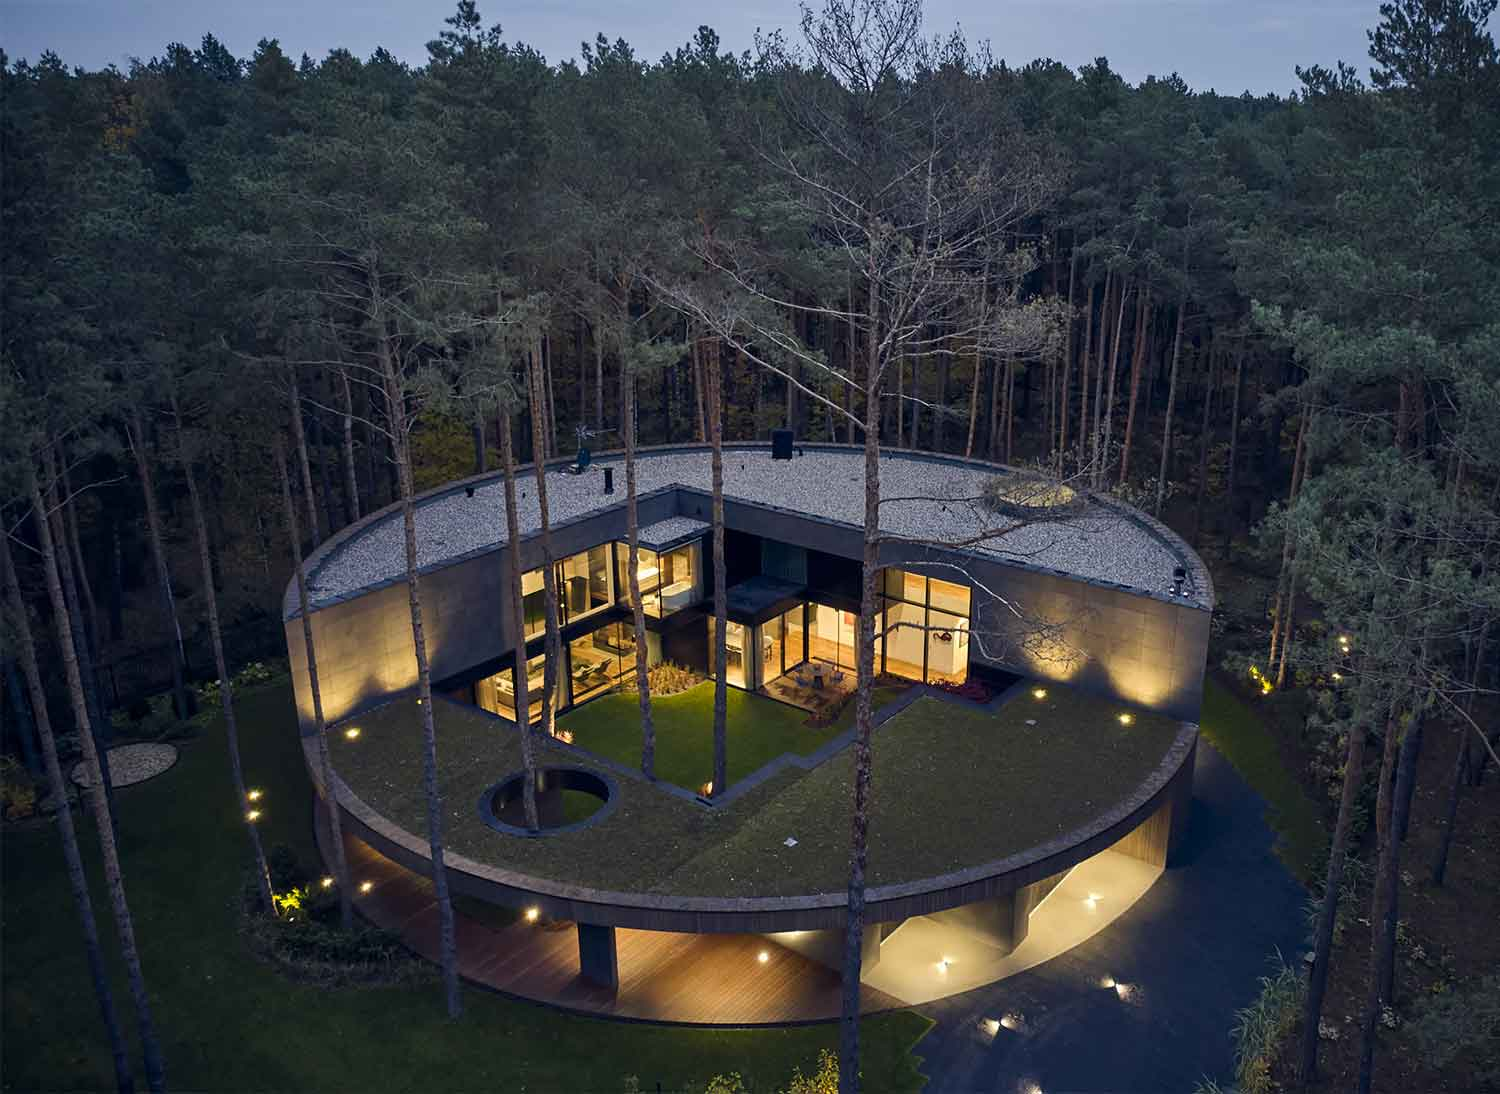 Circle Wood, a tree between architecture and nature